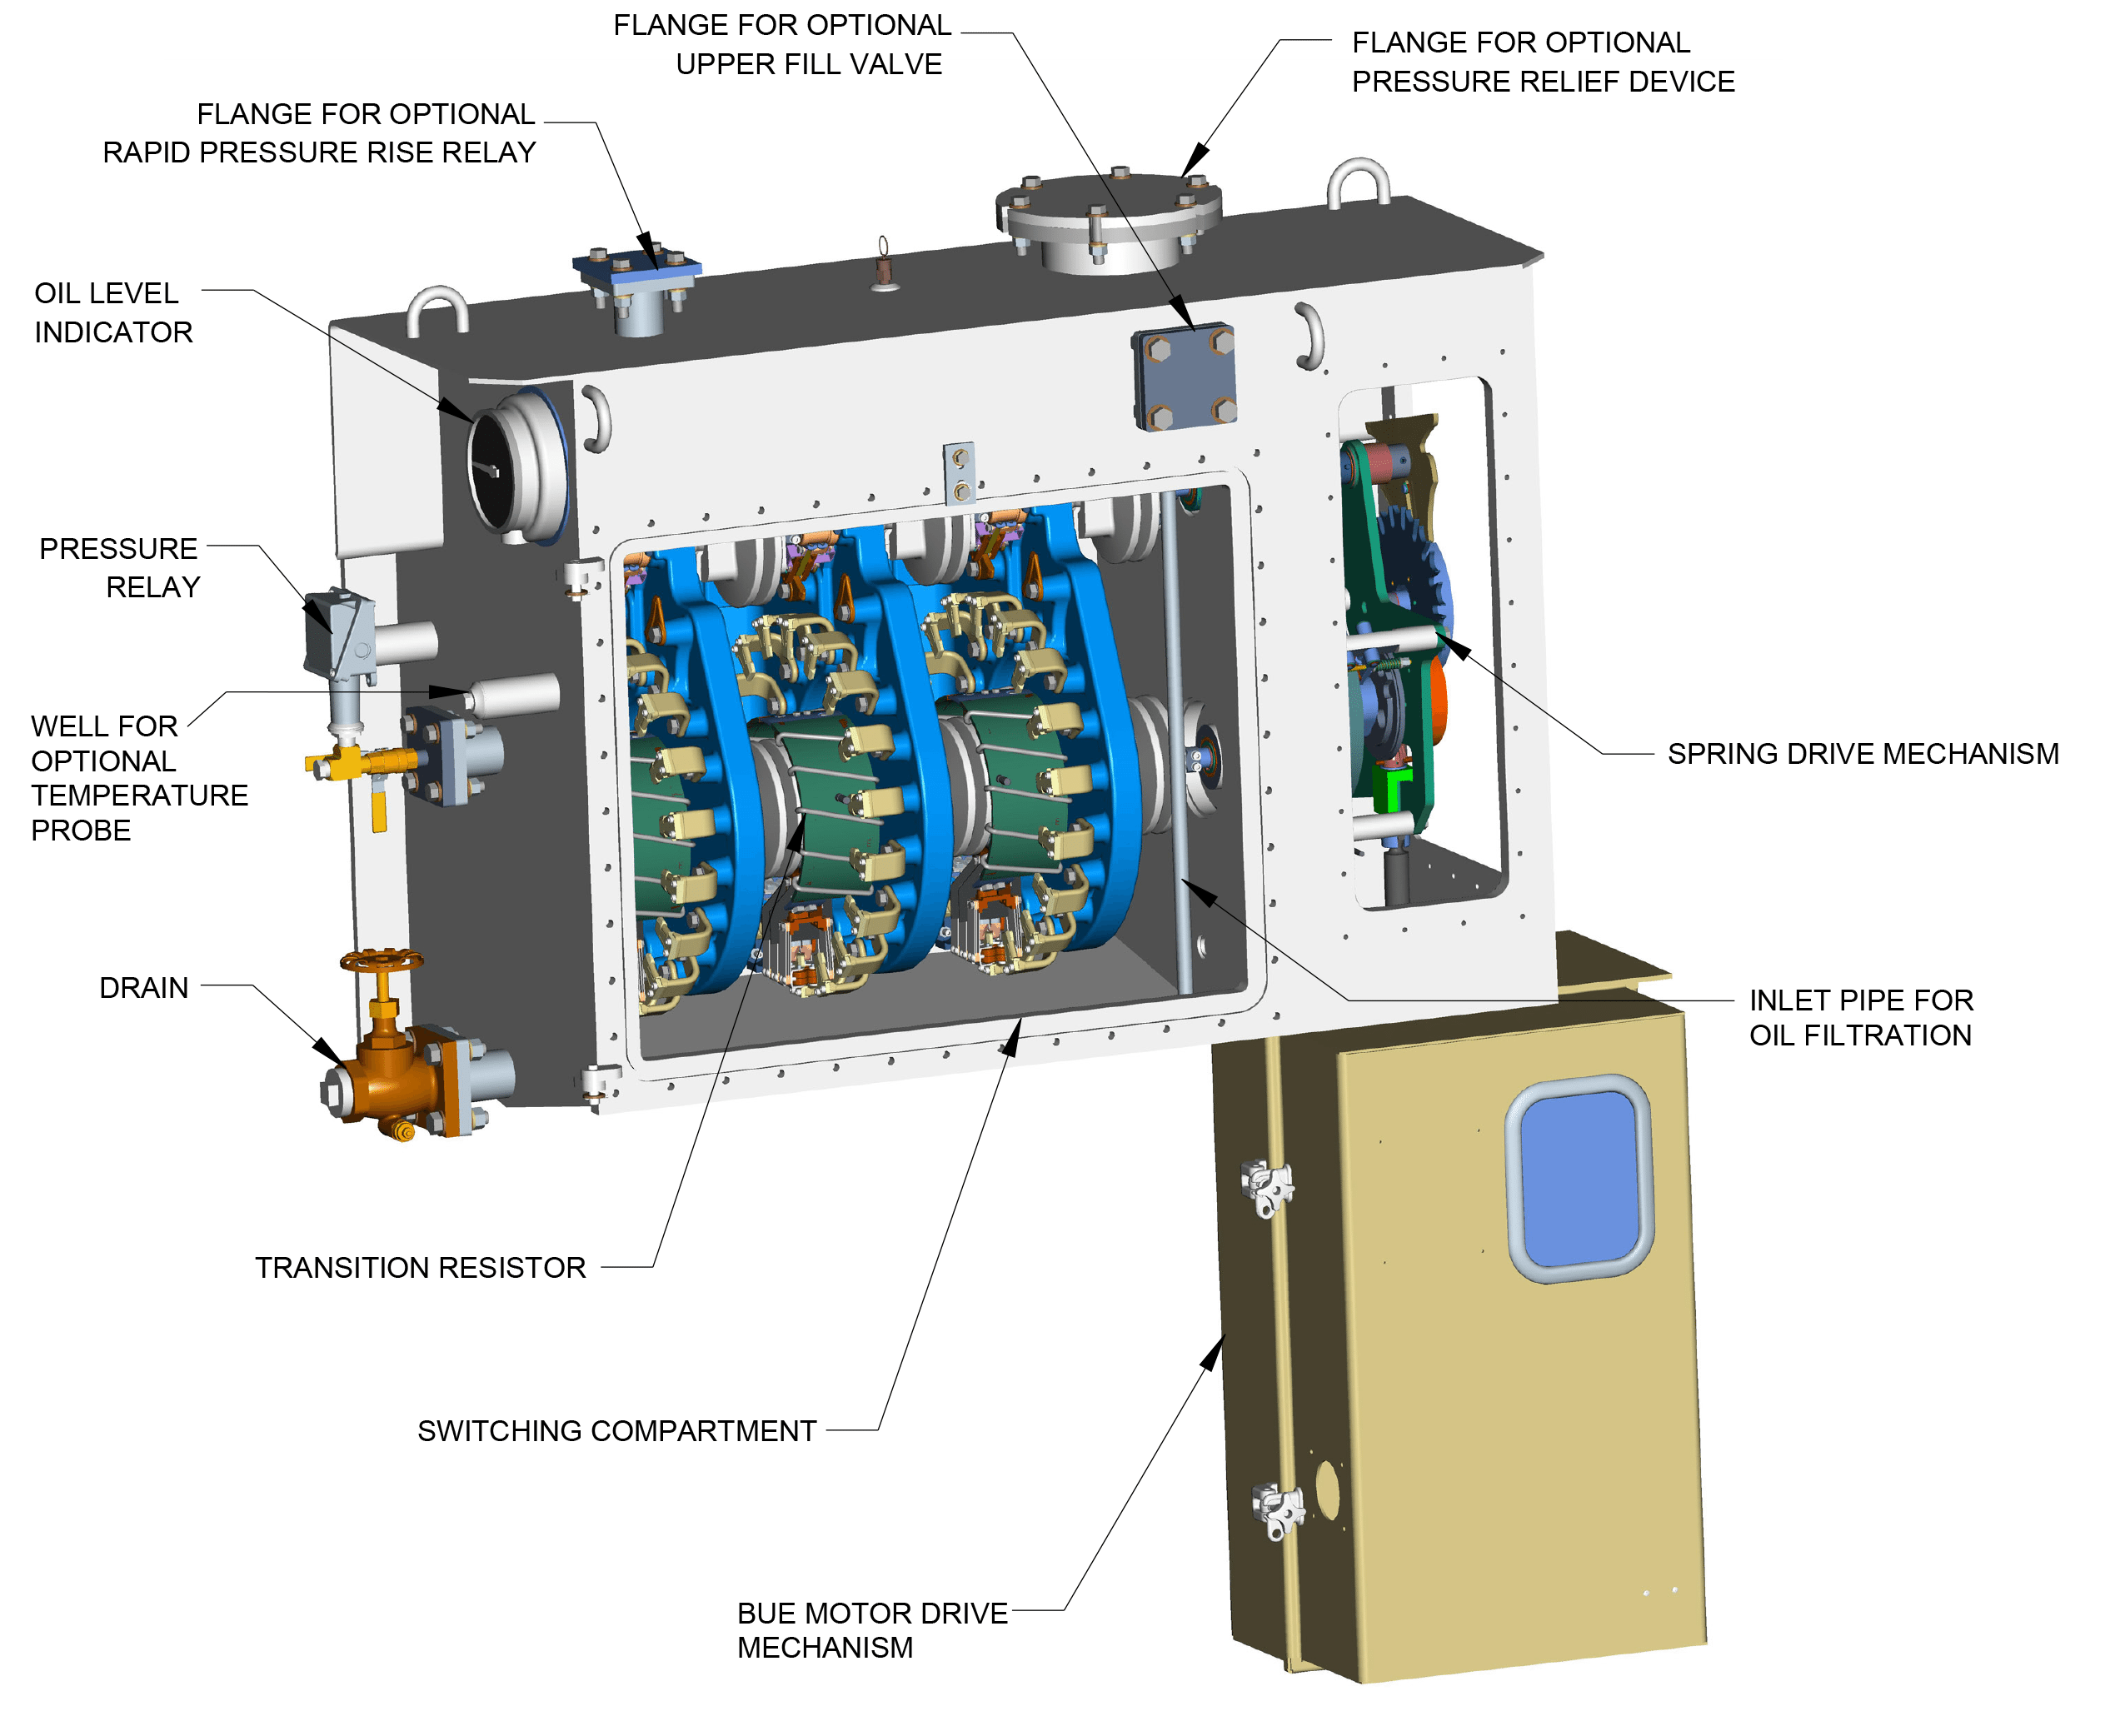 Waukesha Uzd Ltc Upgrades And Enhancements Spx Transformer Solutions Bodine Motor Wiring Diagram Additionally Single Phase Electric The Bue Provides Mechanical Power To Spring Drive Mechanism Houses Electrical Control Signaling Protection Equipment Figure 1 Below Depicts